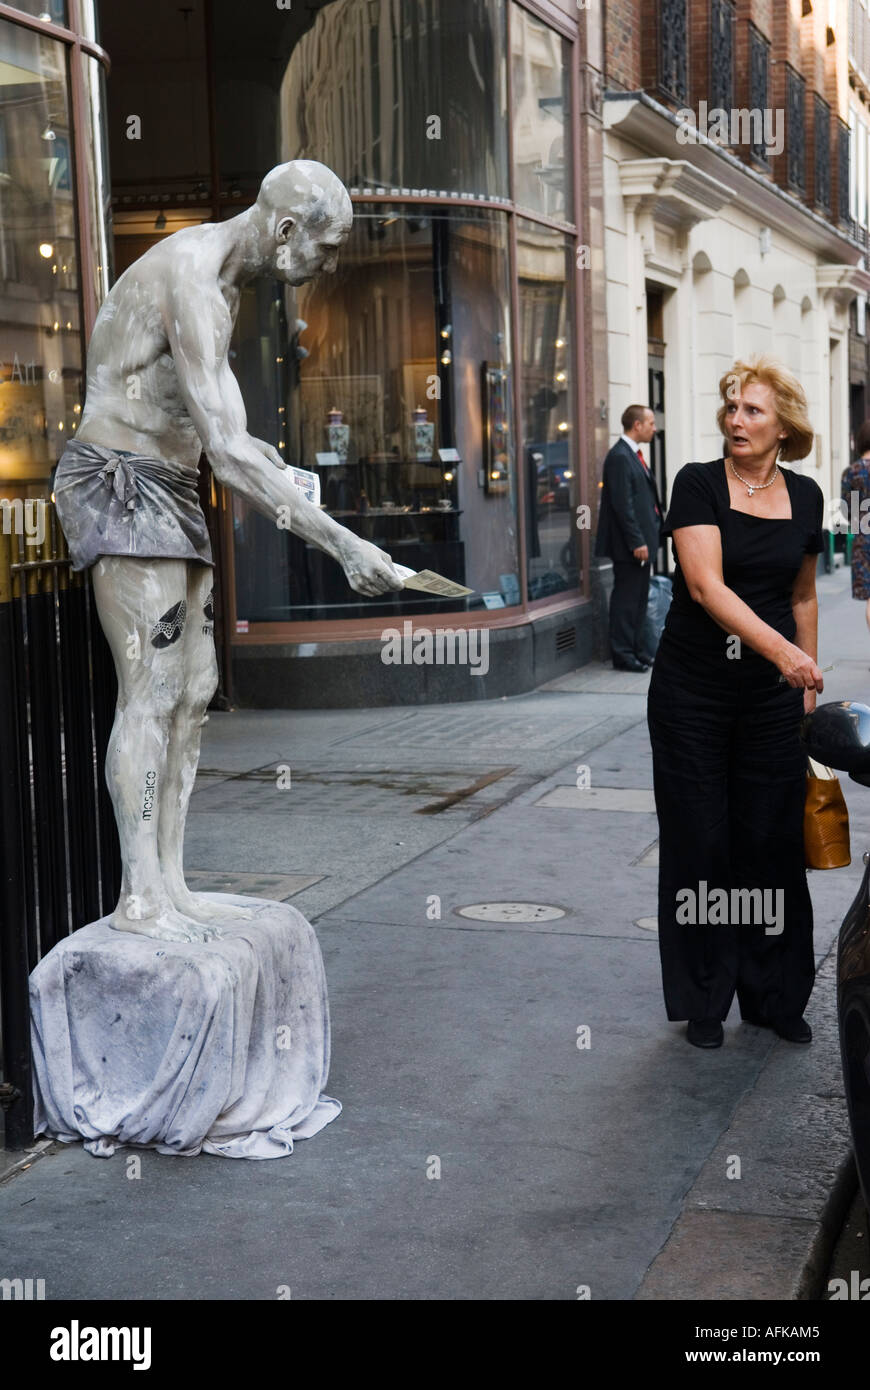 Living Statue Albermarle Street central London W1 England HOMER SYKES - Stock Image